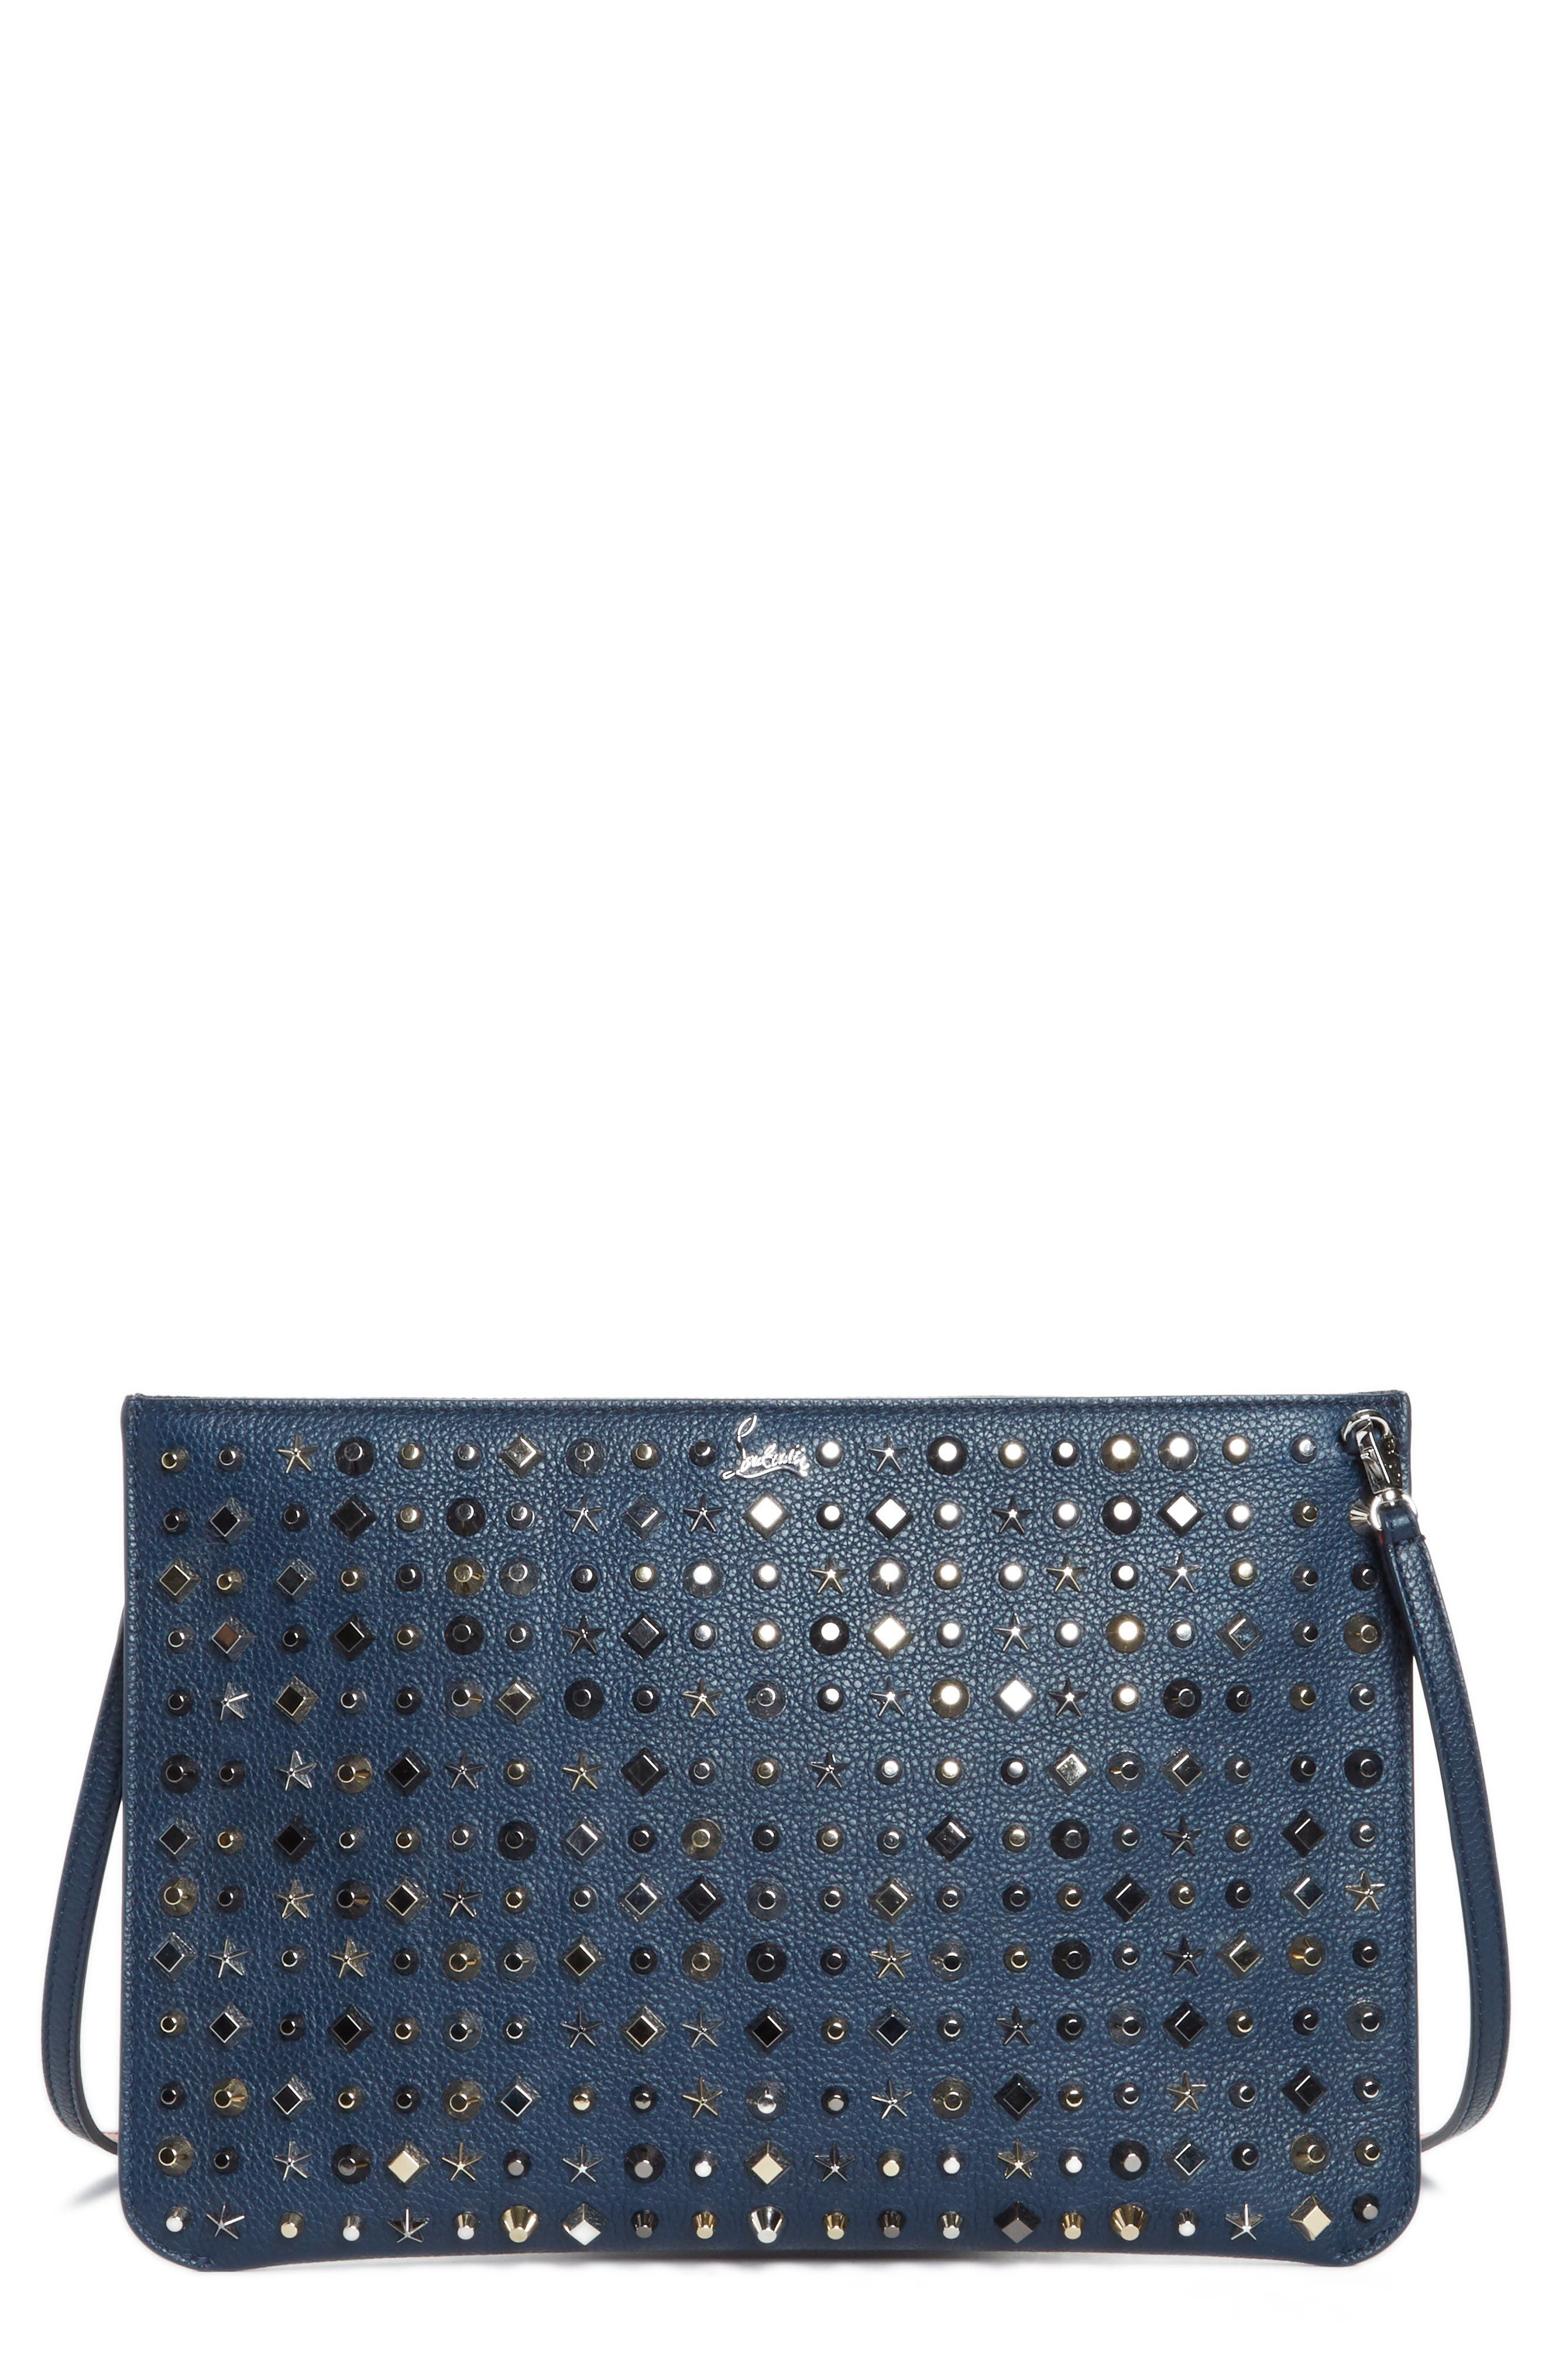 Alternate Image 1 Selected - Christian Louboutin Loubiclutch Spiked Leather Clutch